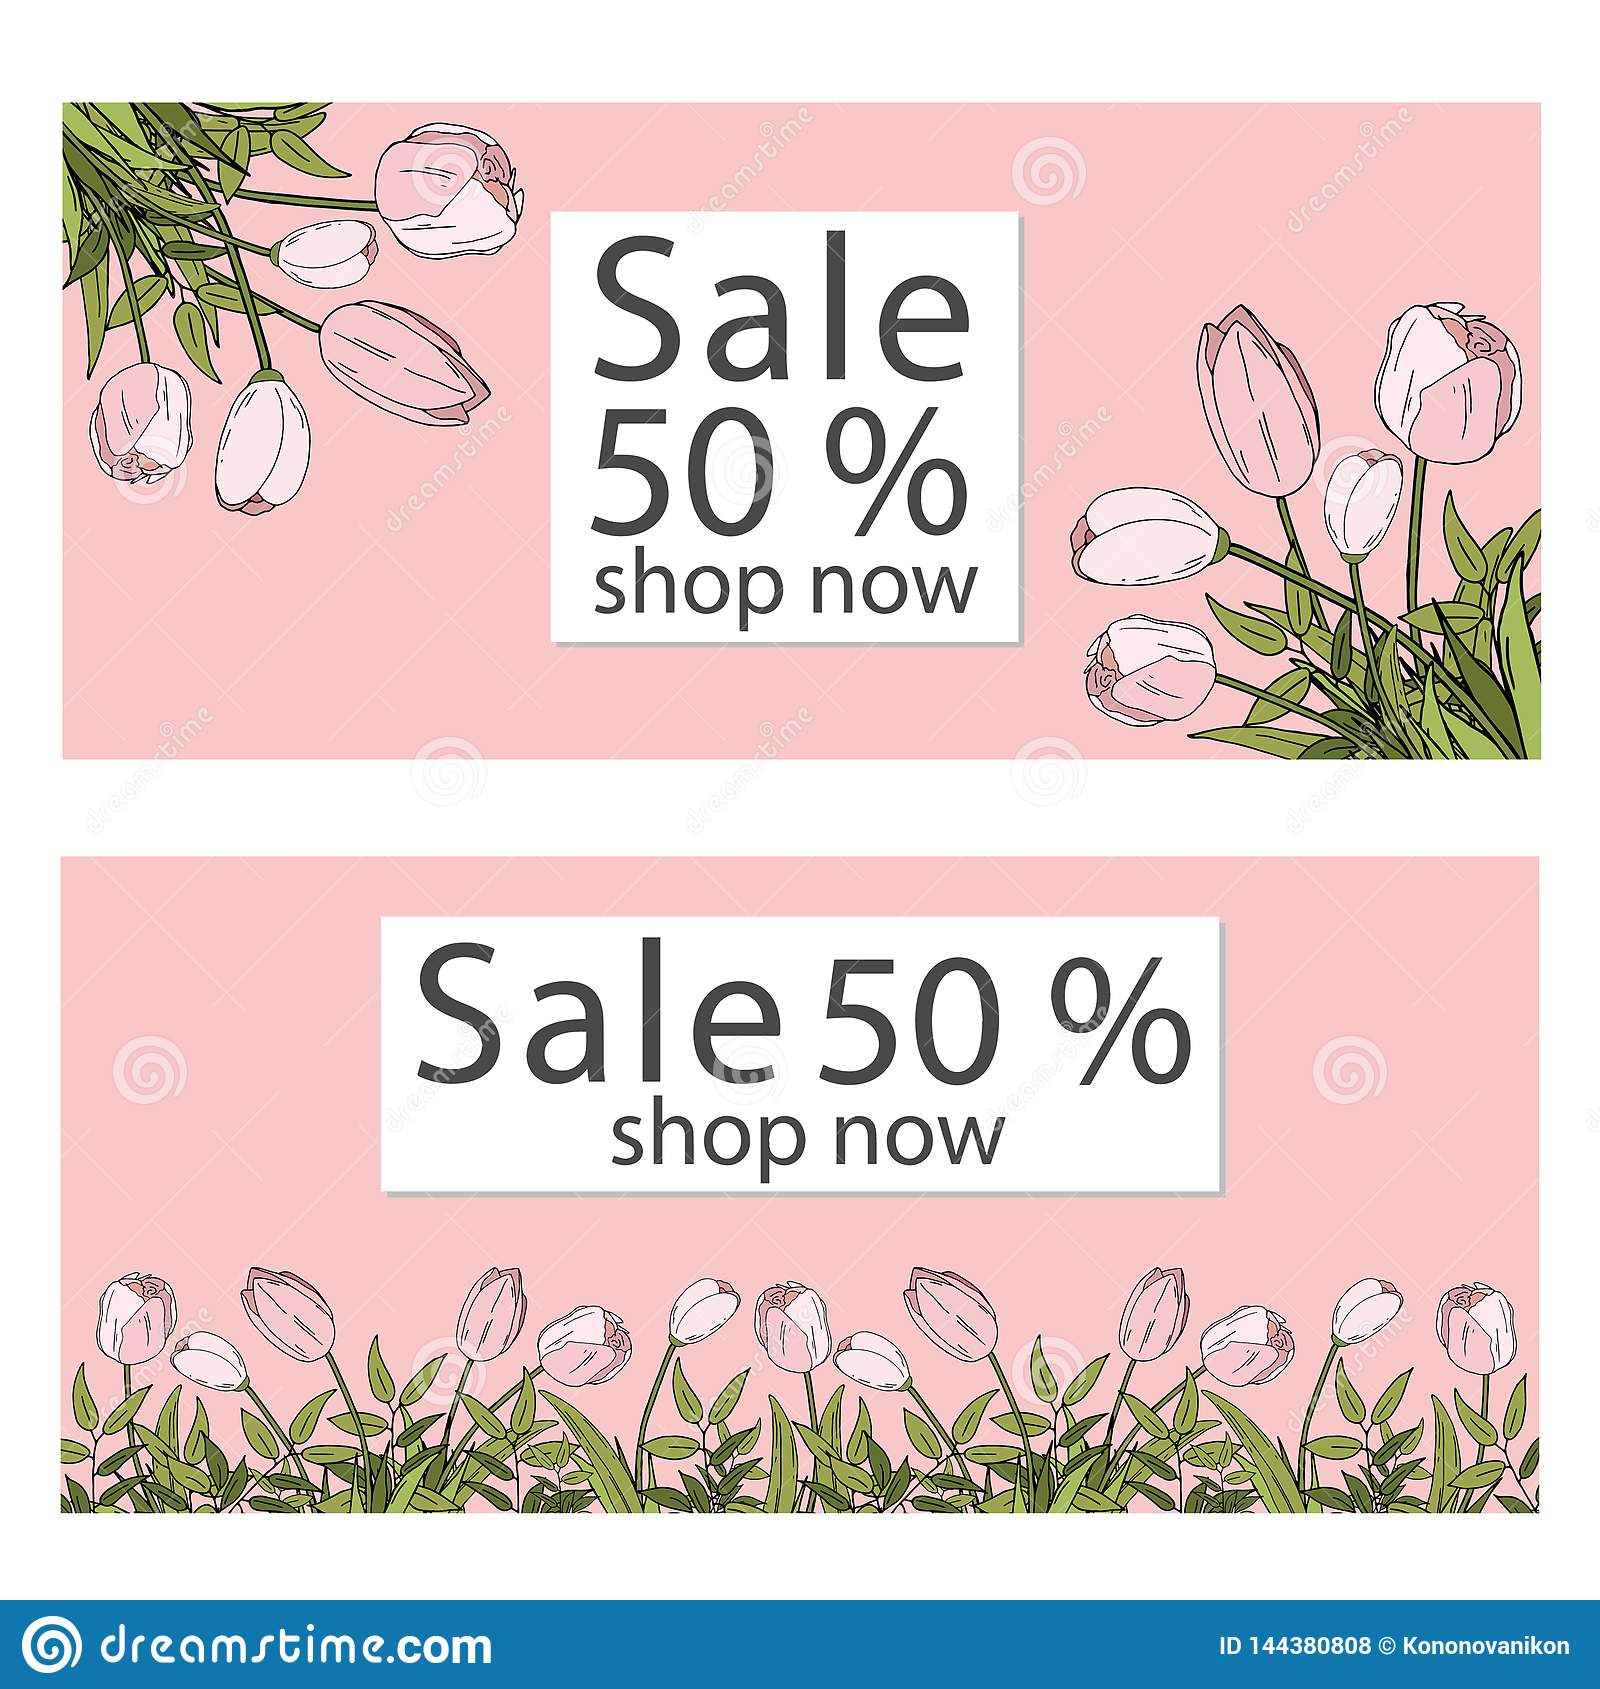 Vector illustration template. sale banners collection for social media banners, web design, shopping on-line, posters, email and